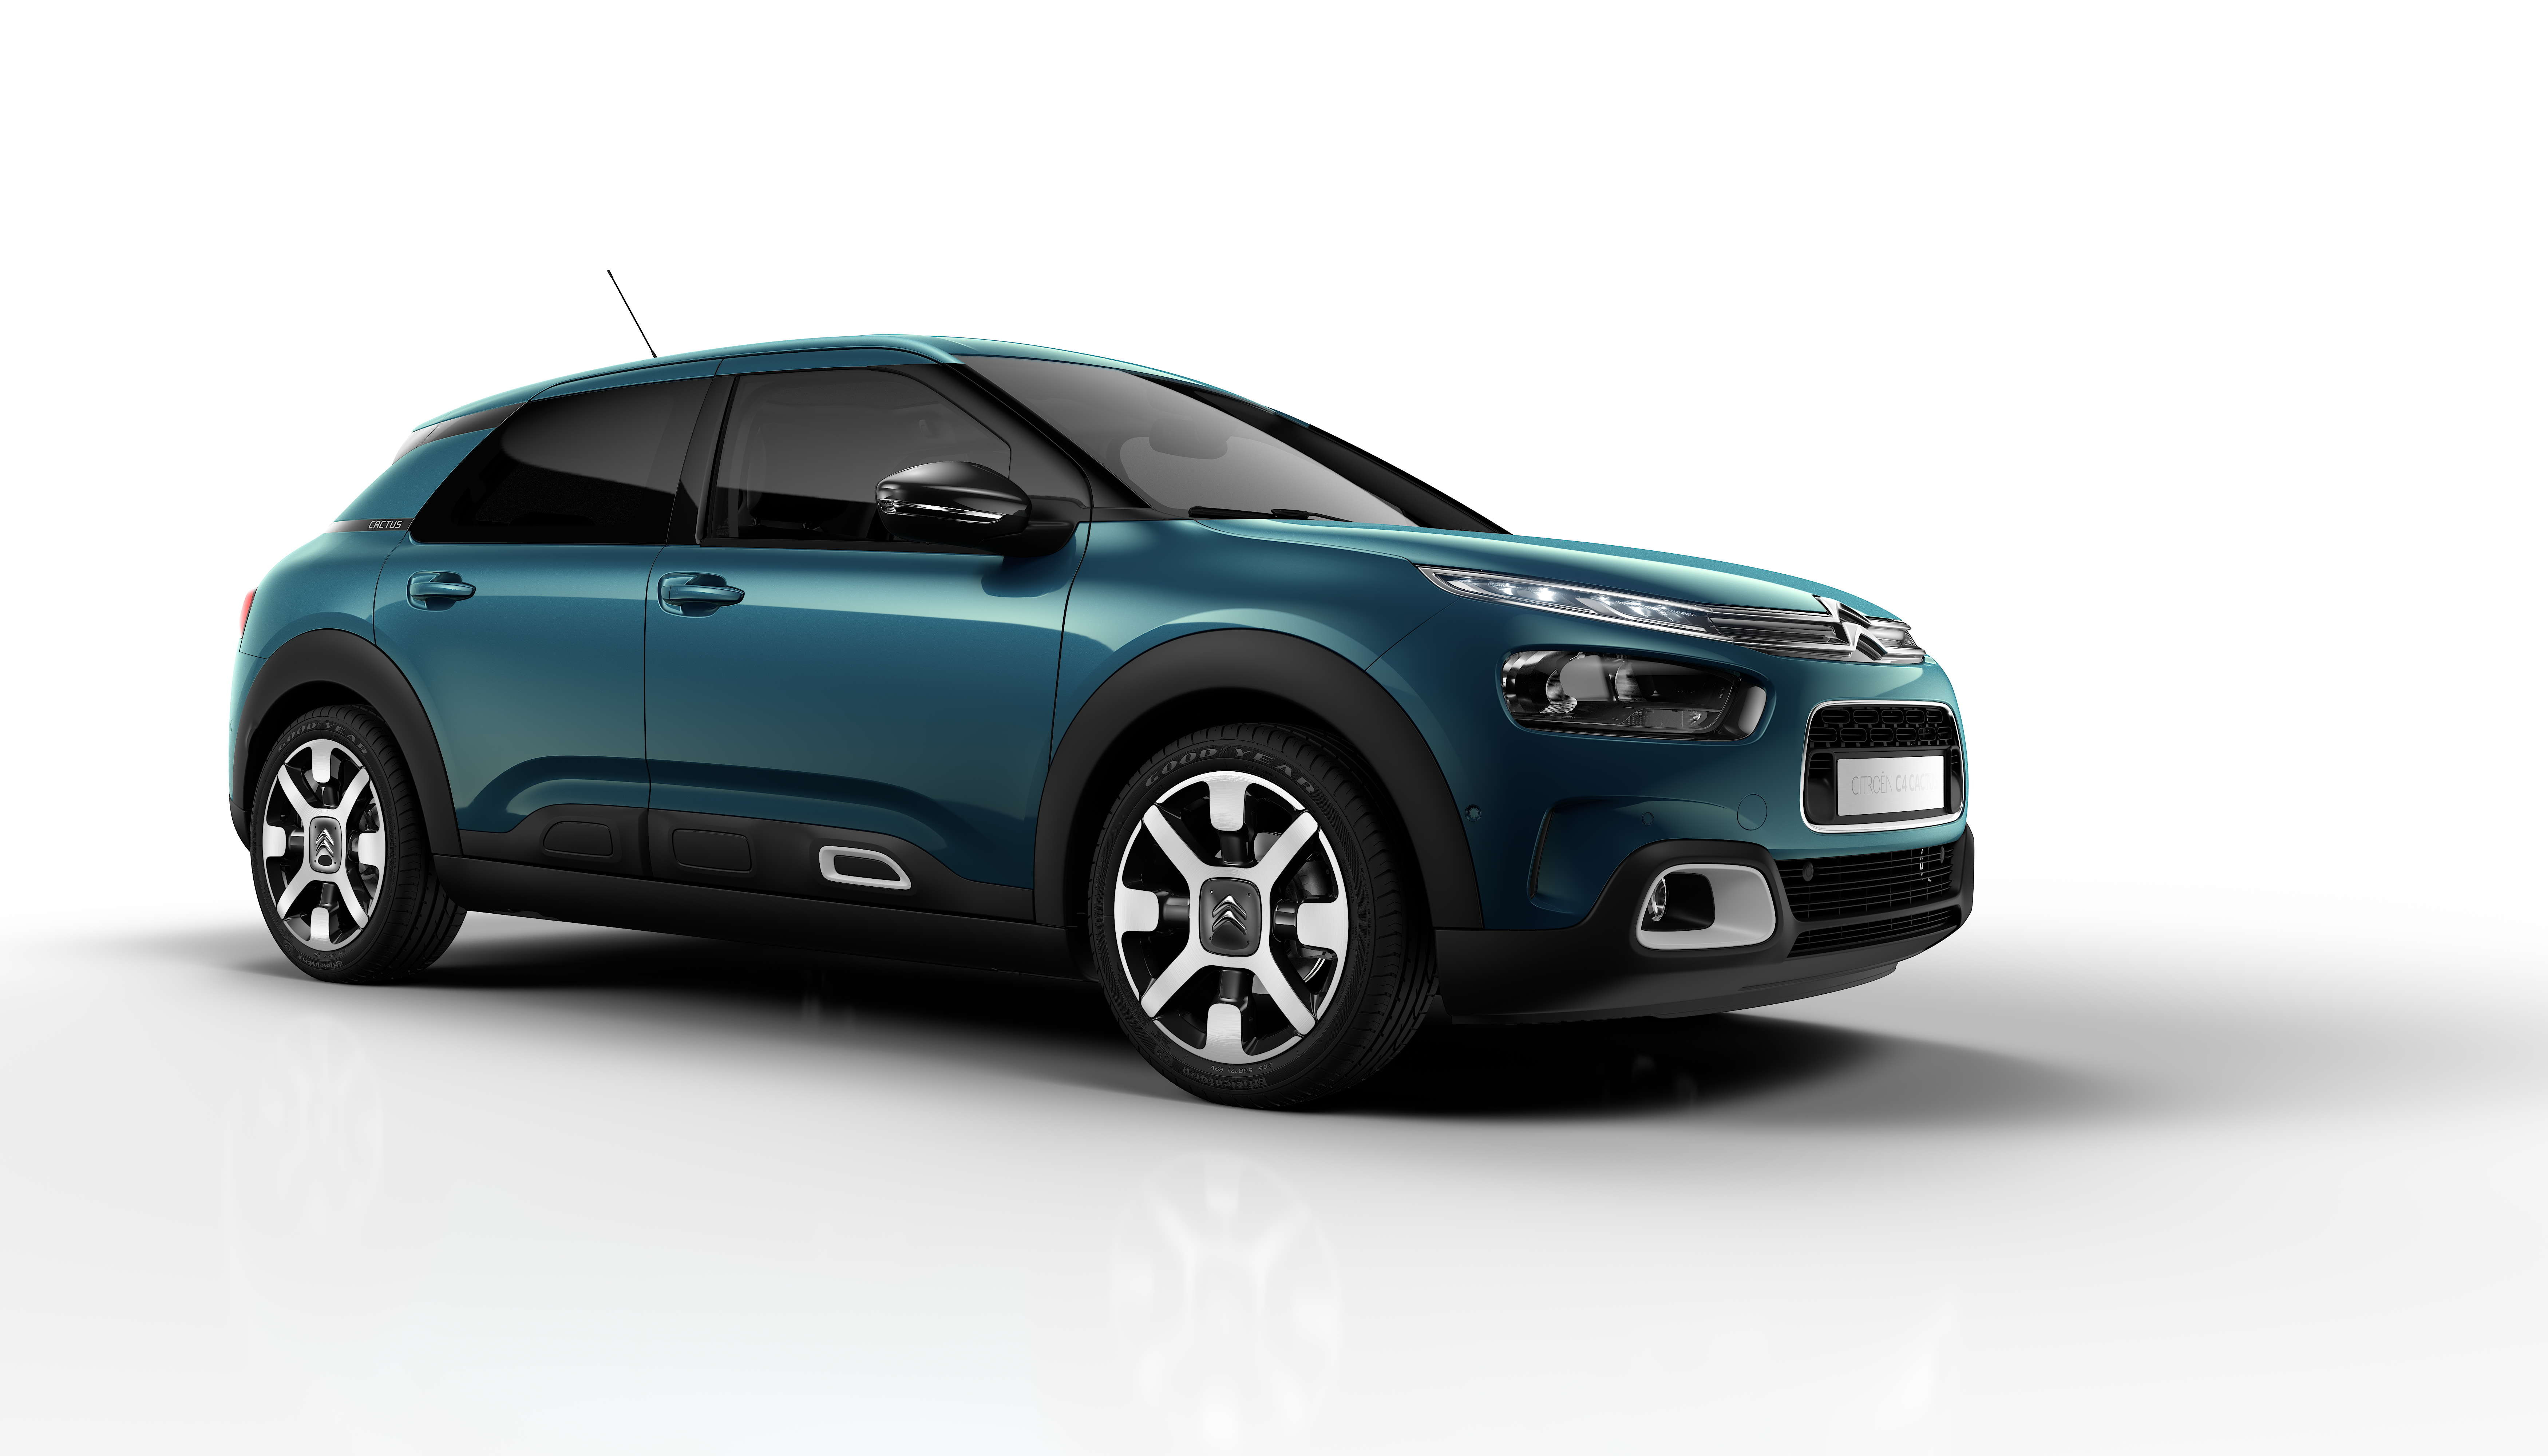 Introducing the New Citroën C4 Cactus